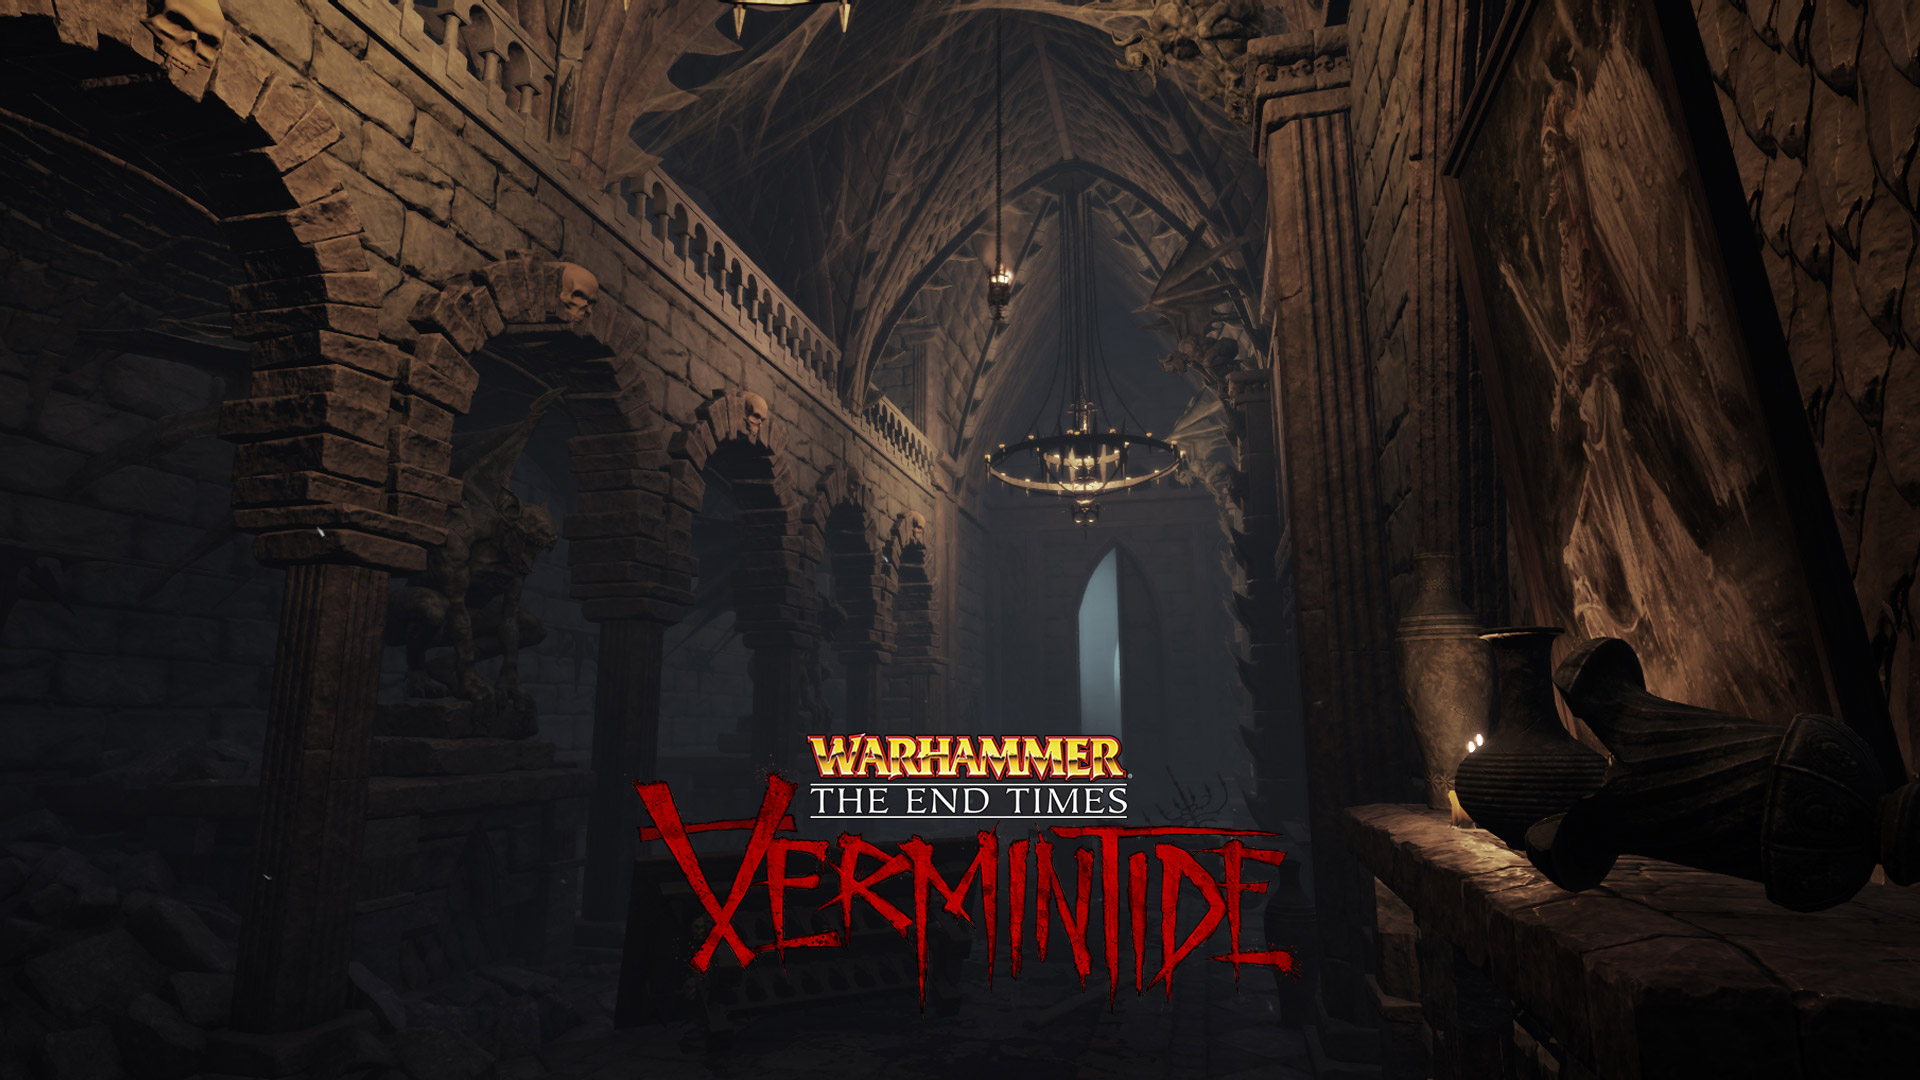 Free Warhammer End Times: Vermintide Wallpaper in 1920x1080